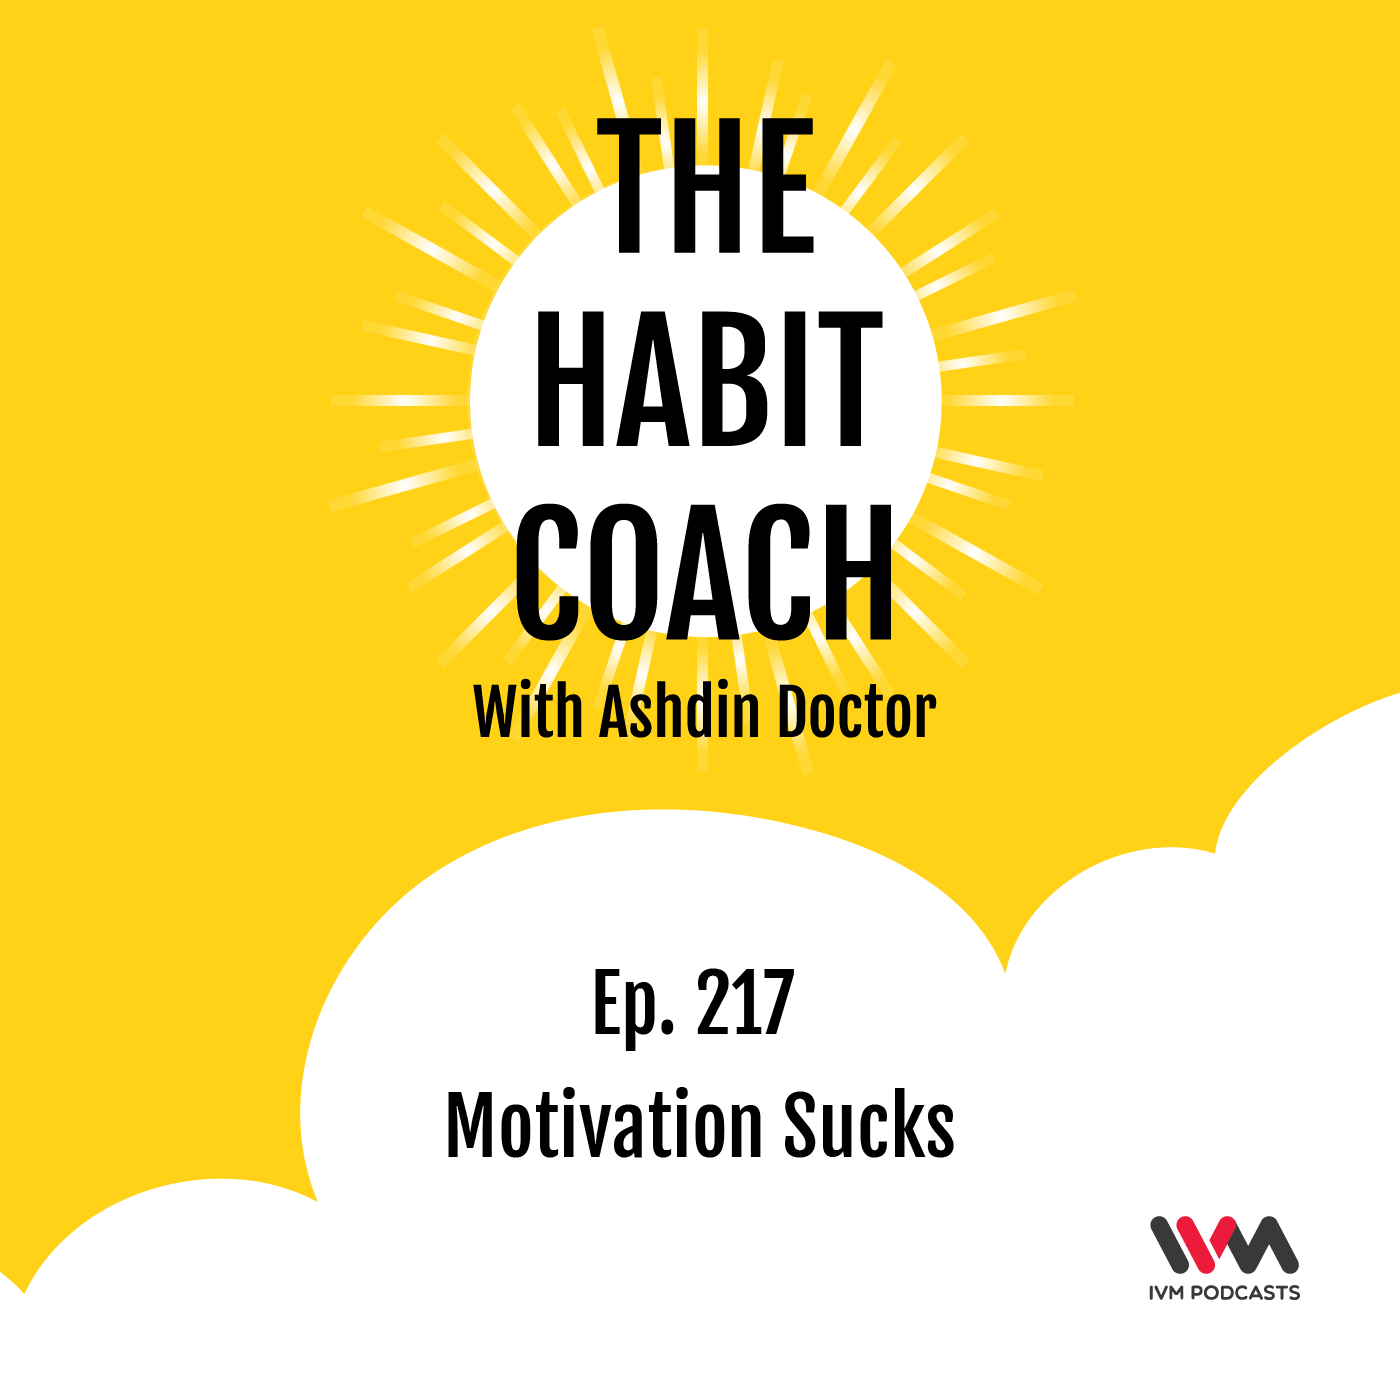 Ep. 217: Motivation Sucks